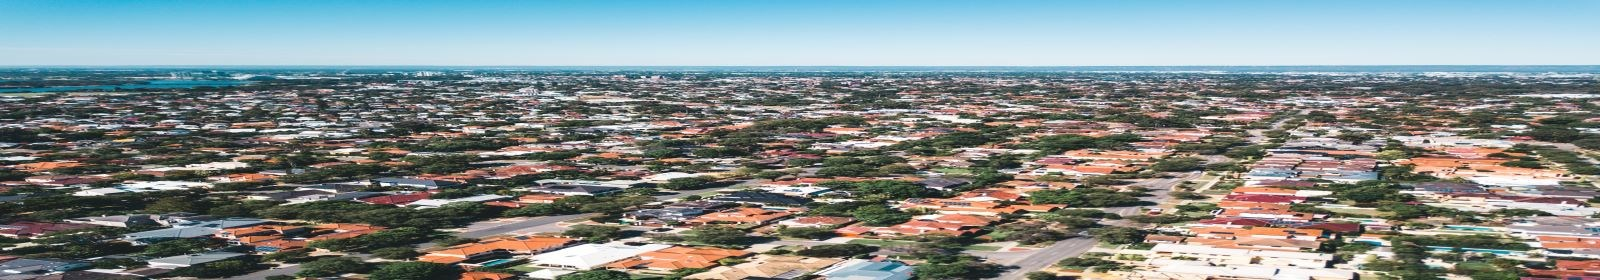 Bloemfontein residential property is akin to a 'Teflon-coated' market